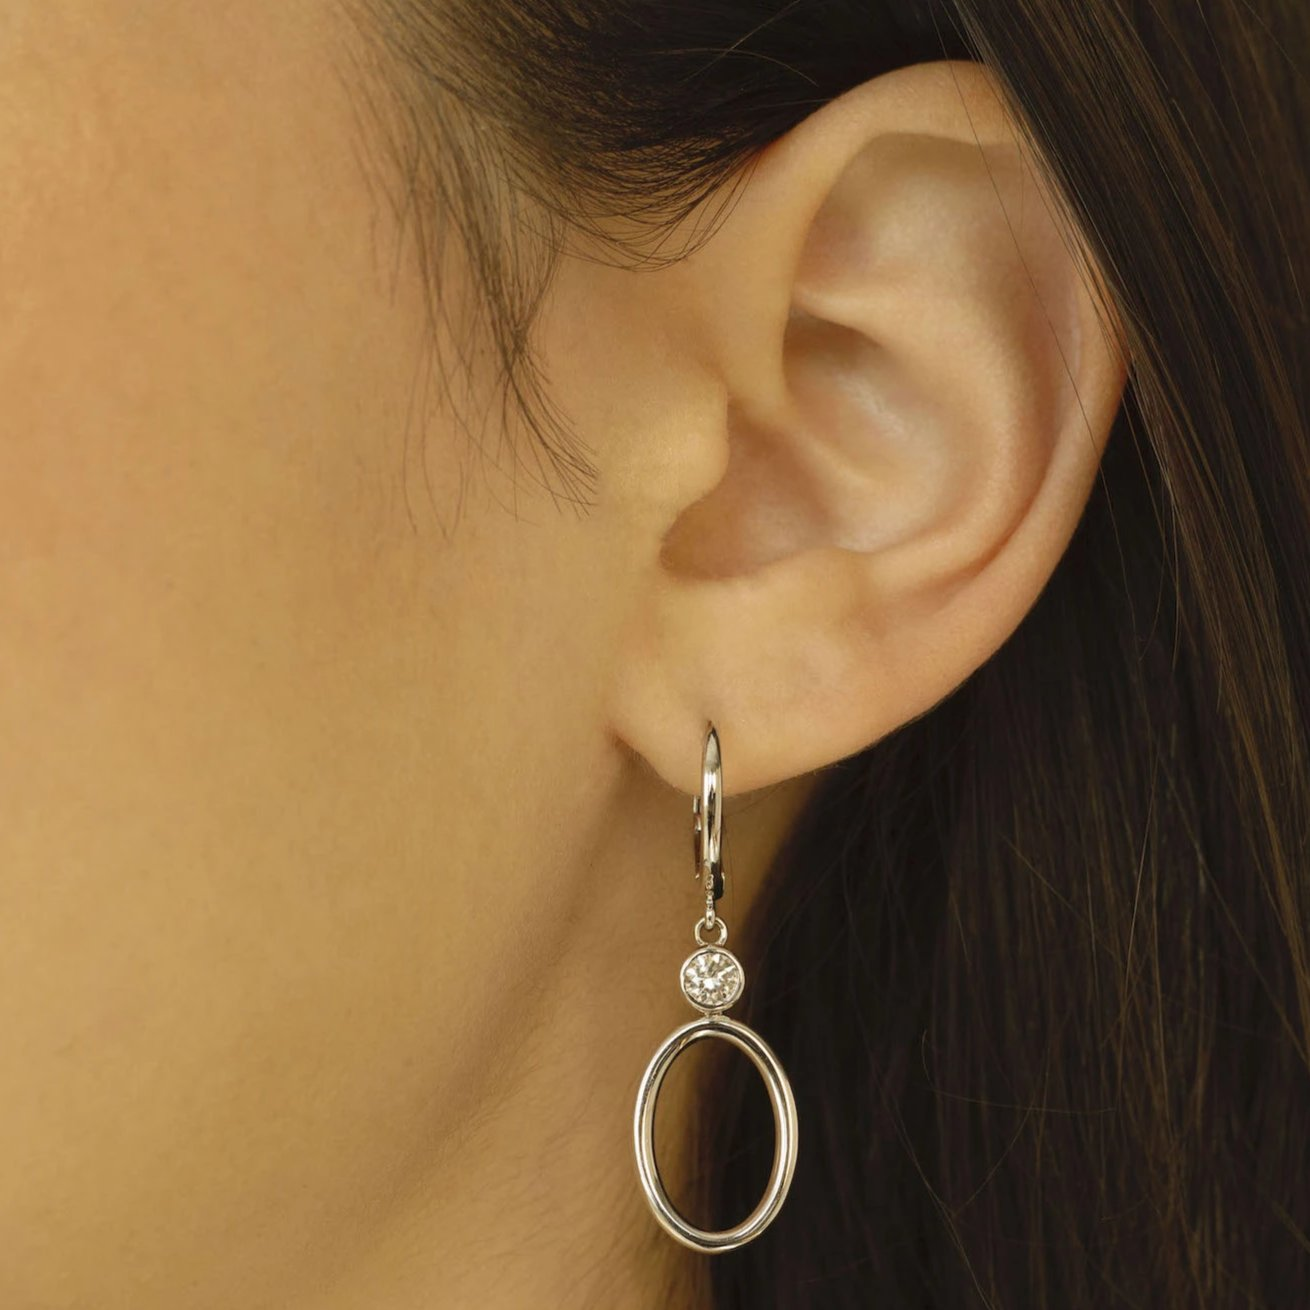 Woman wearing Henri Noël Jewelry white gold Drop Hoop earrings with bezel cut diamonds.